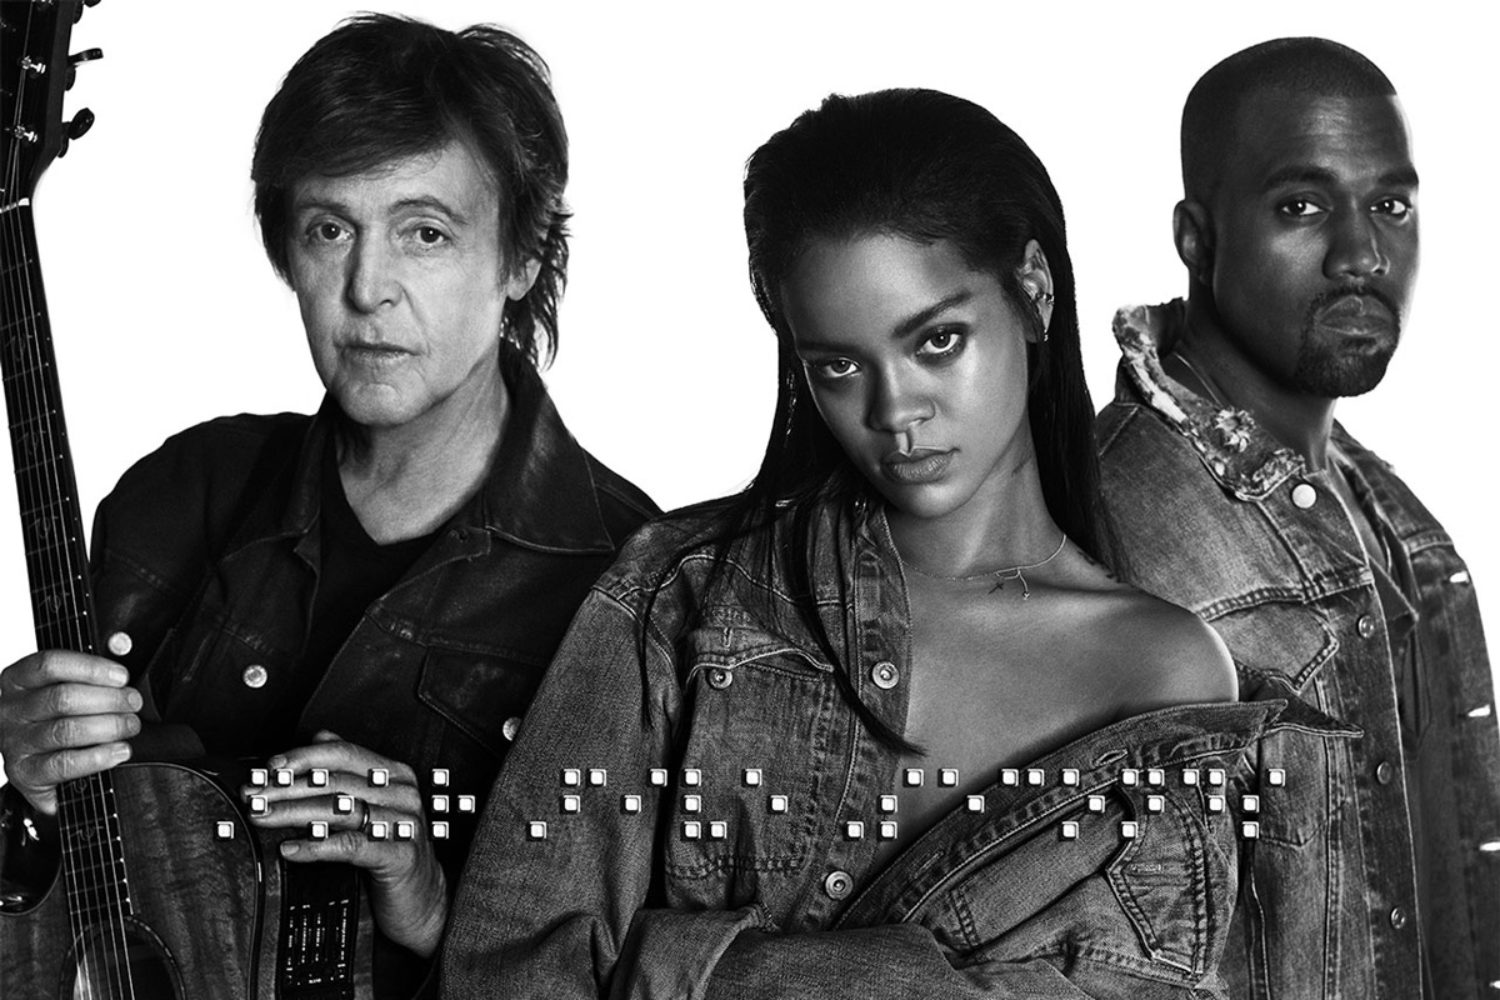 Rihanna, Kanye West and Paul McCartney release new track, 'FourFiveSeconds'